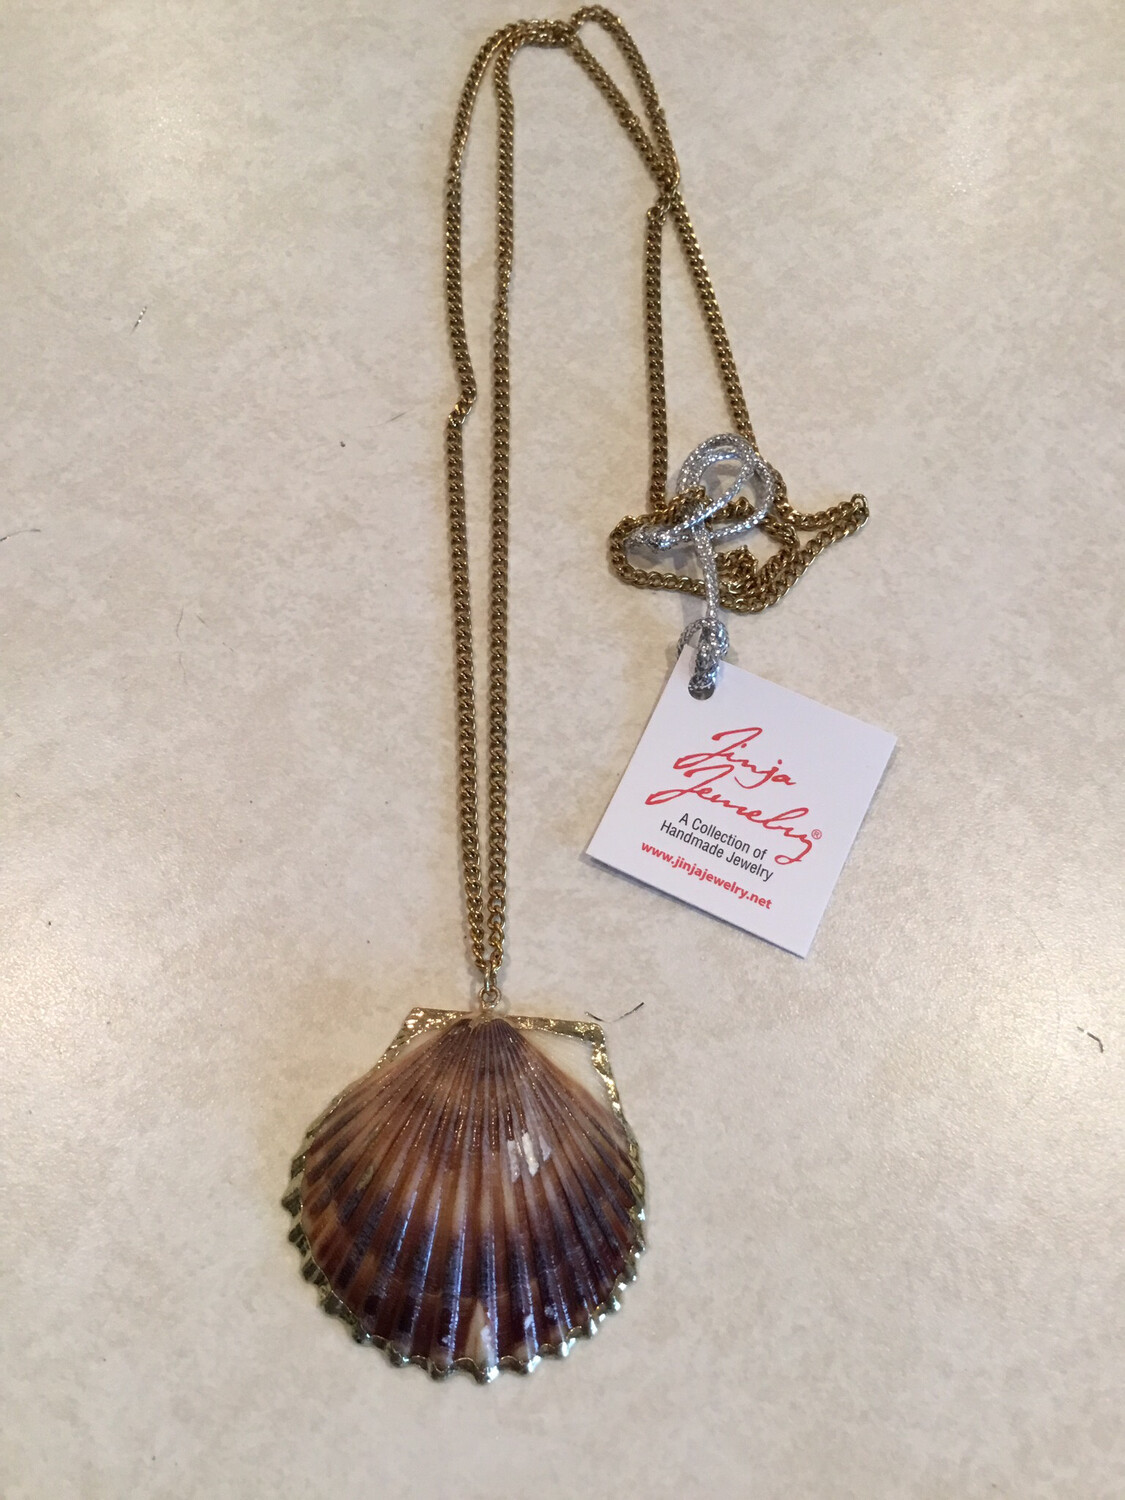 Natural Fan Shell In Cased In 24K Gold Plating On Nickel And Lead FREE Gold Chain.